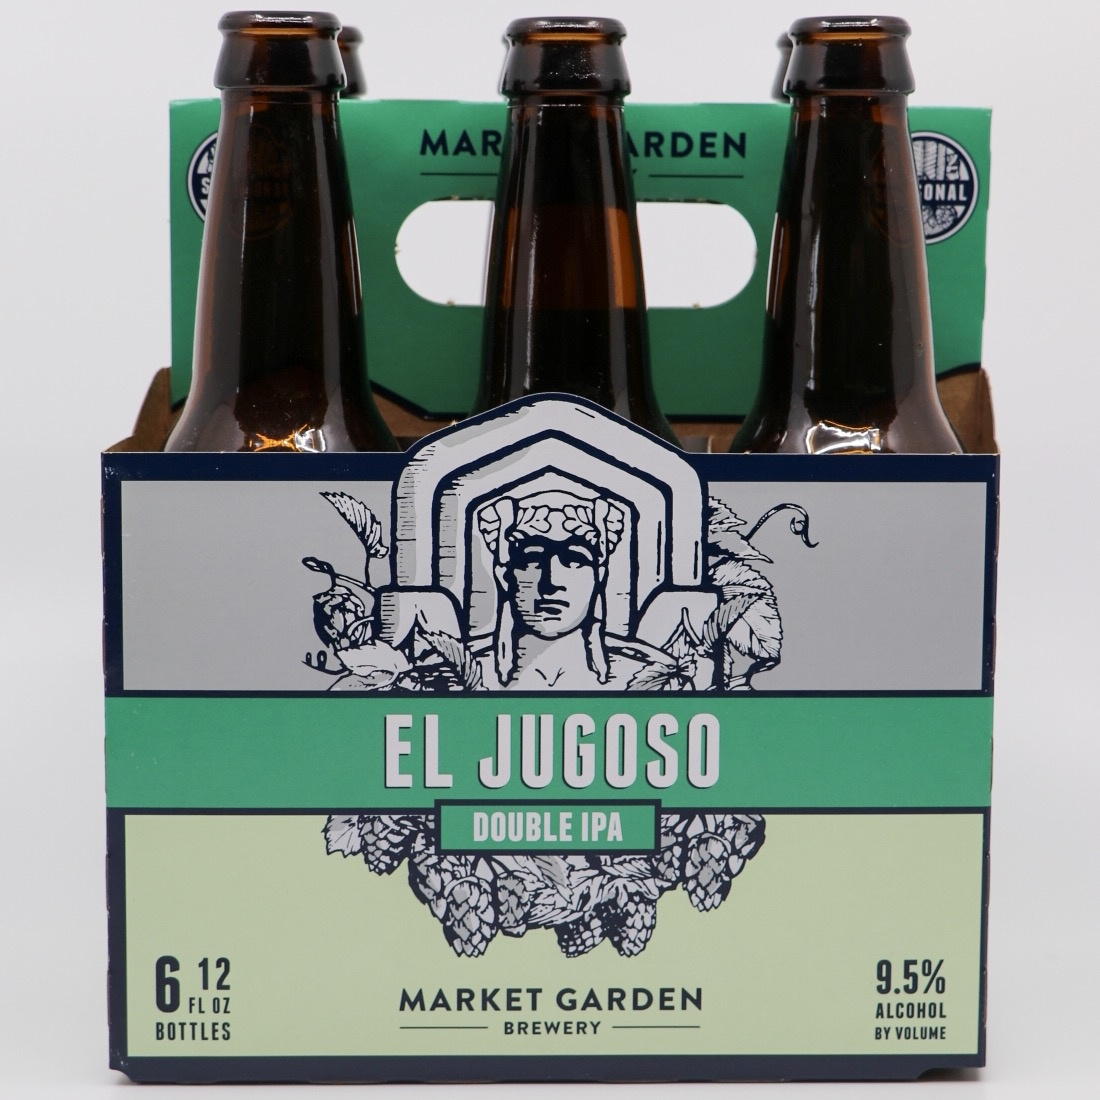 El Jugoso Double IPA 6-Pack